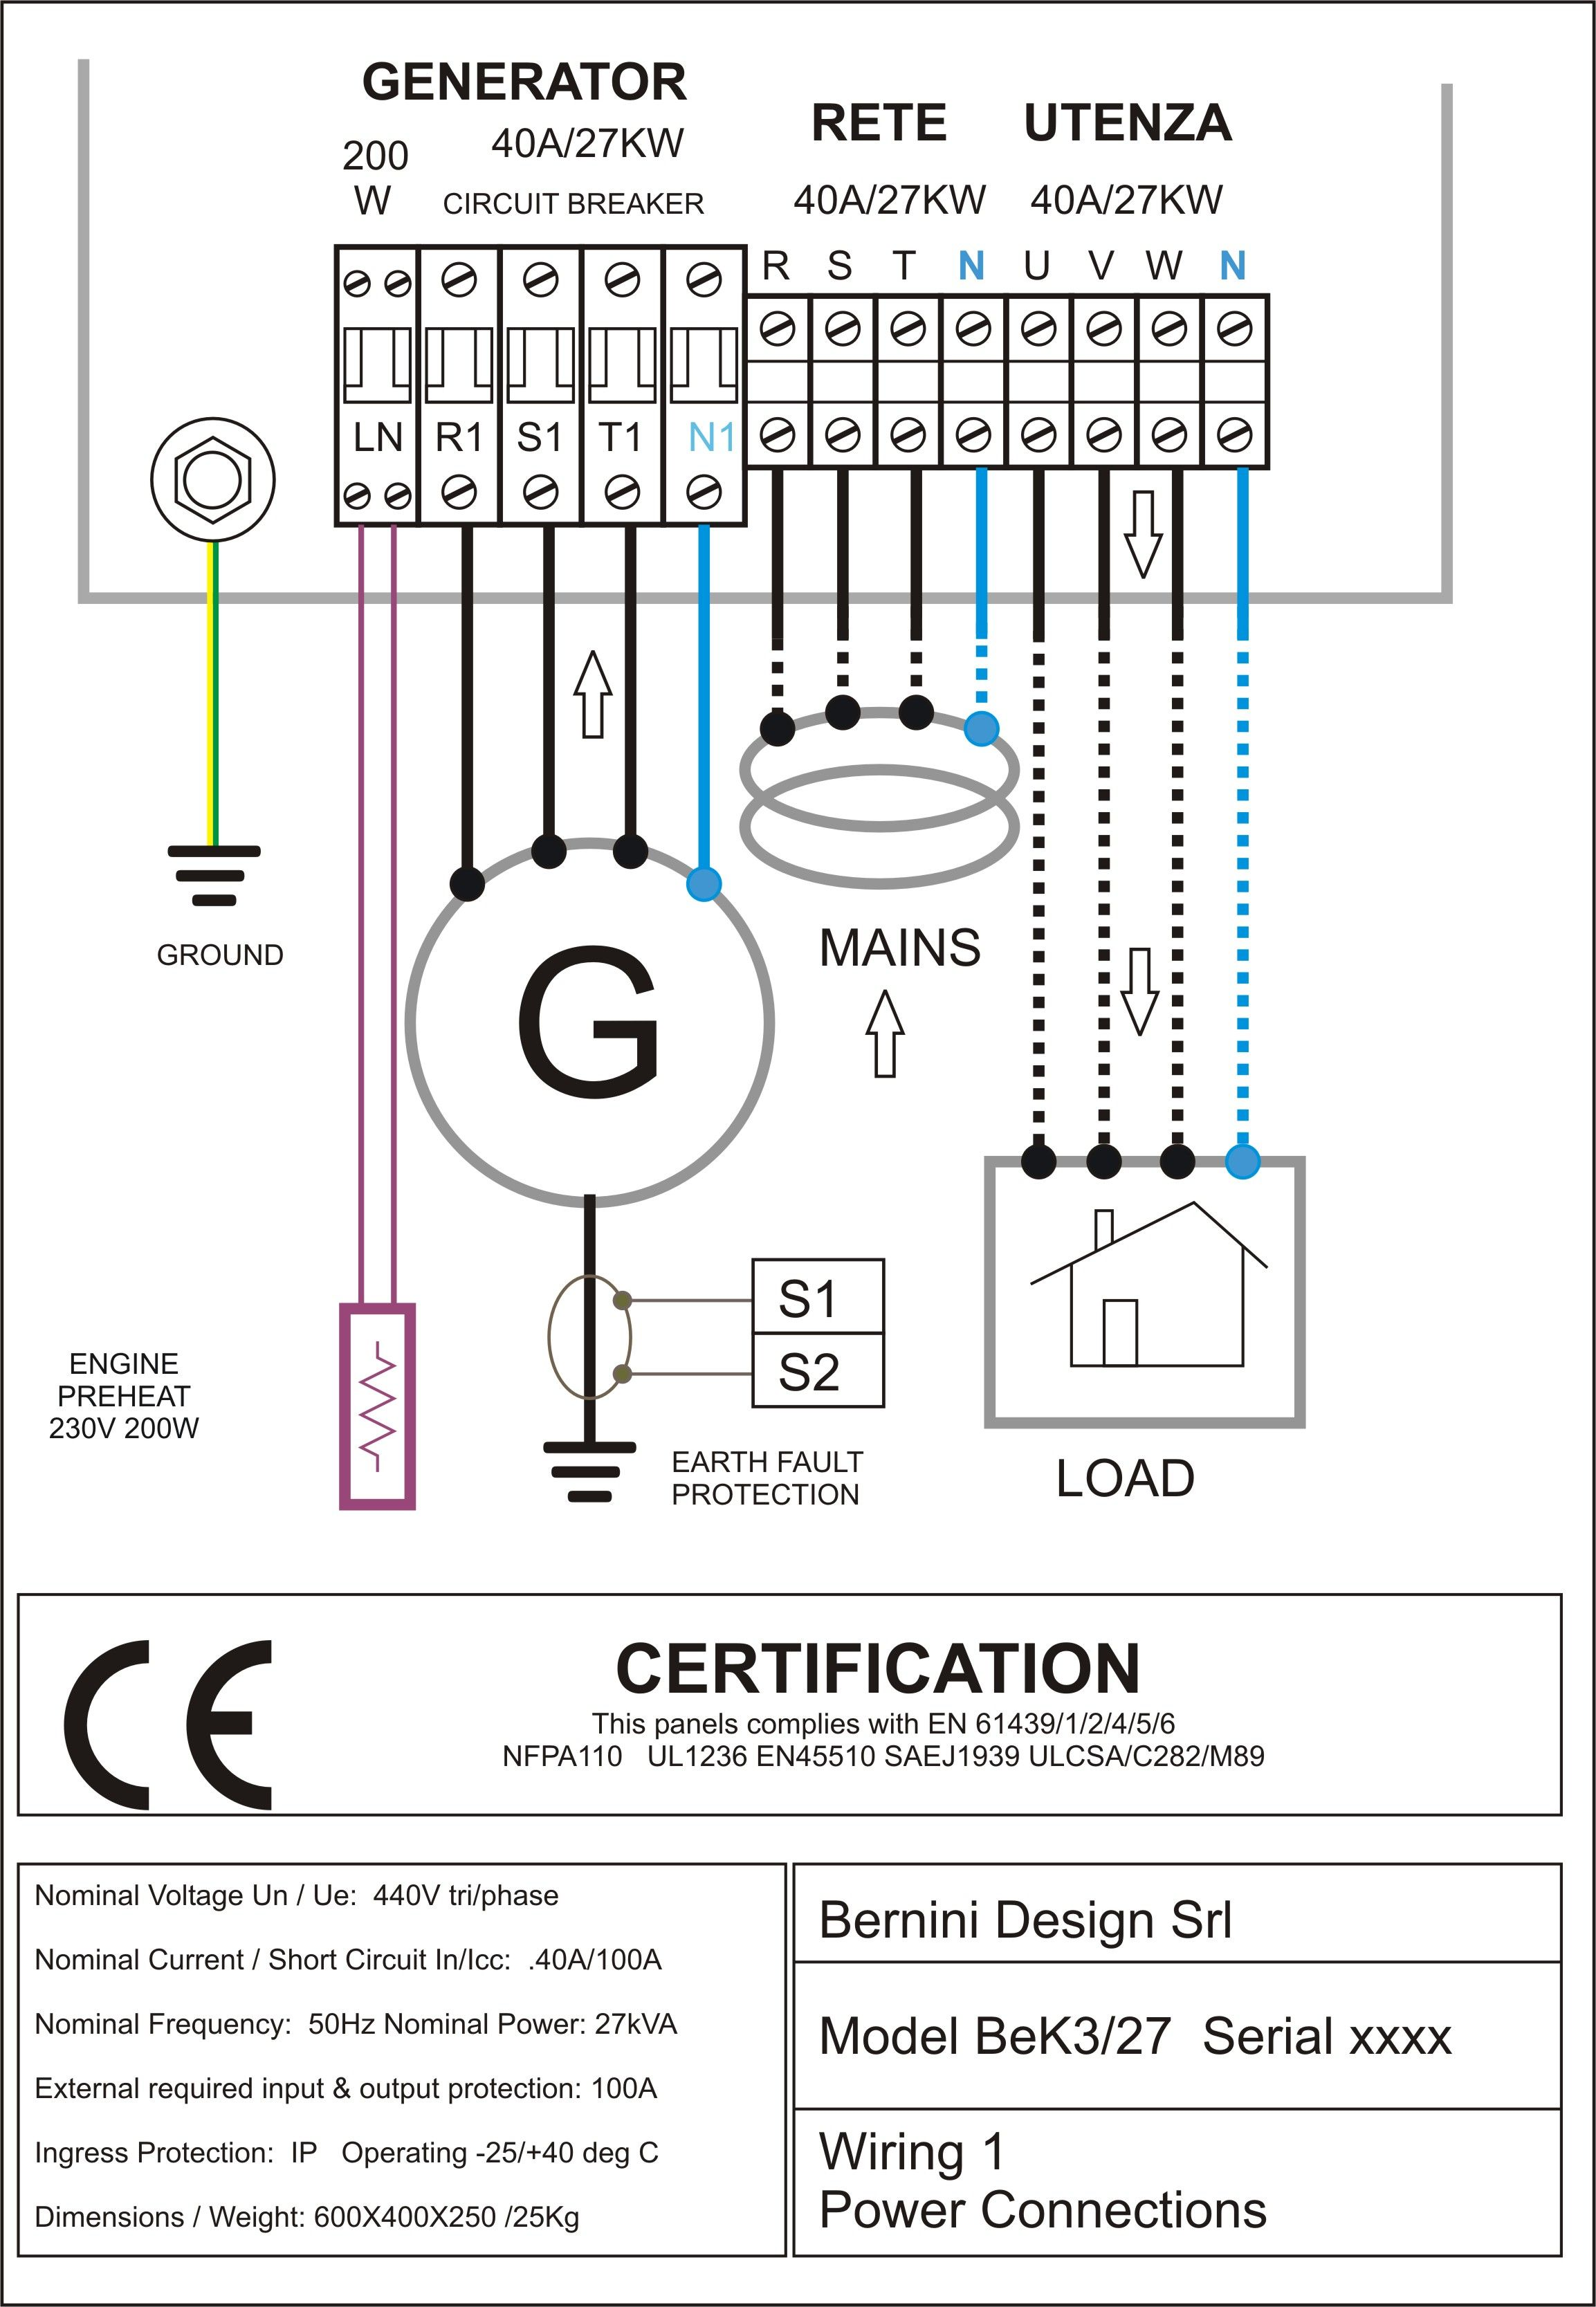 e789bca93f9142d48250ddc66668a81d diesel generator control panel wiring diagram gr pinterest controller wire diagram for 3246e2 lift at webbmarketing.co